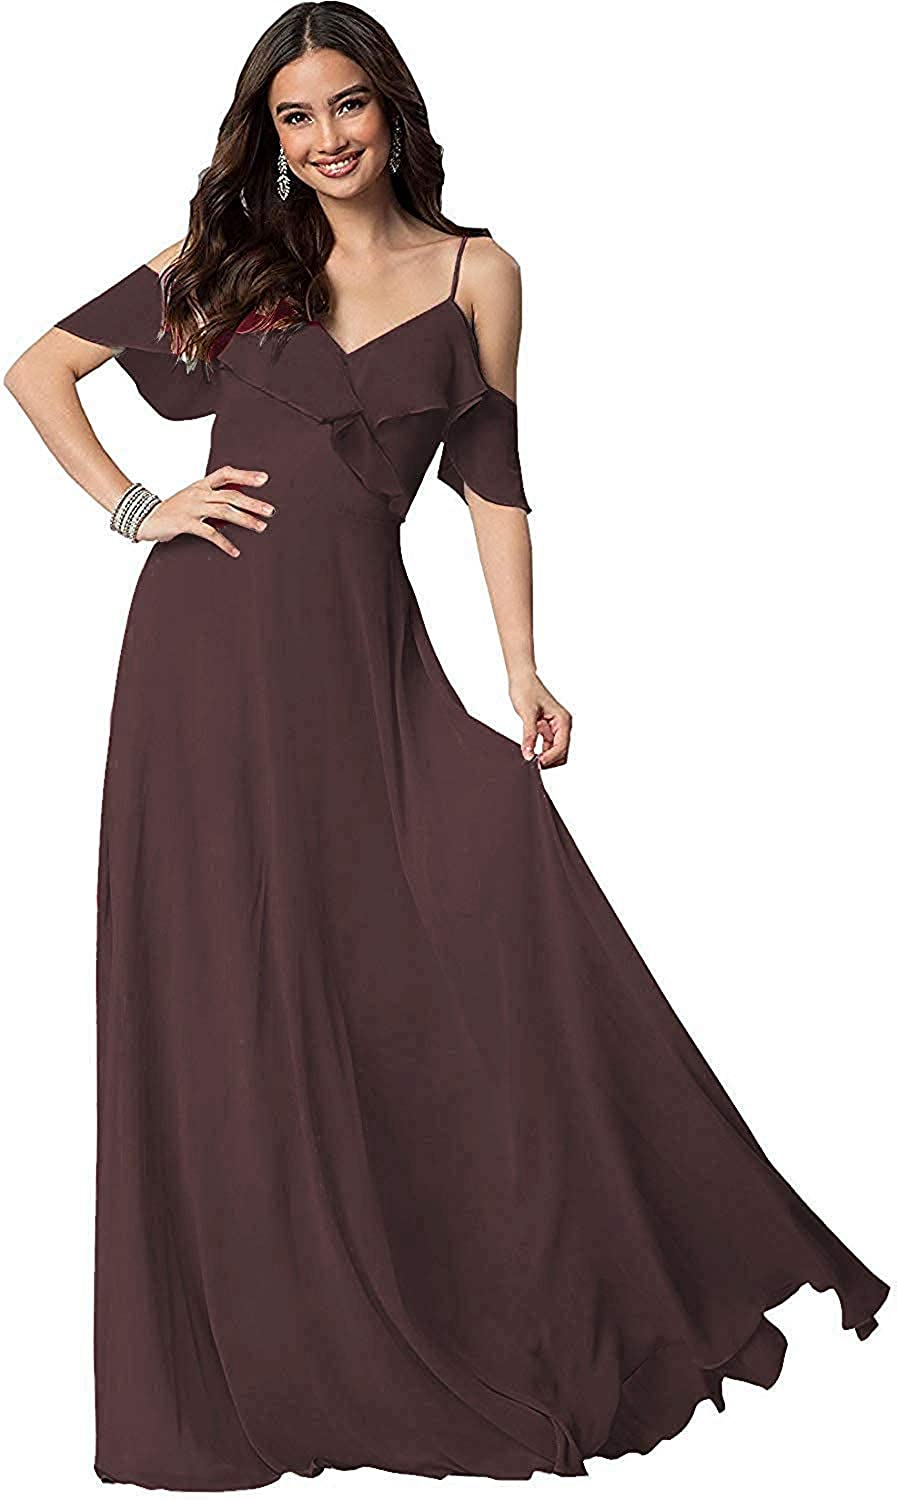 AINNIE Cold Shoulder Bridesmaid Dress Long V-Neck Prom Evening Dress for Wome Brown 17w